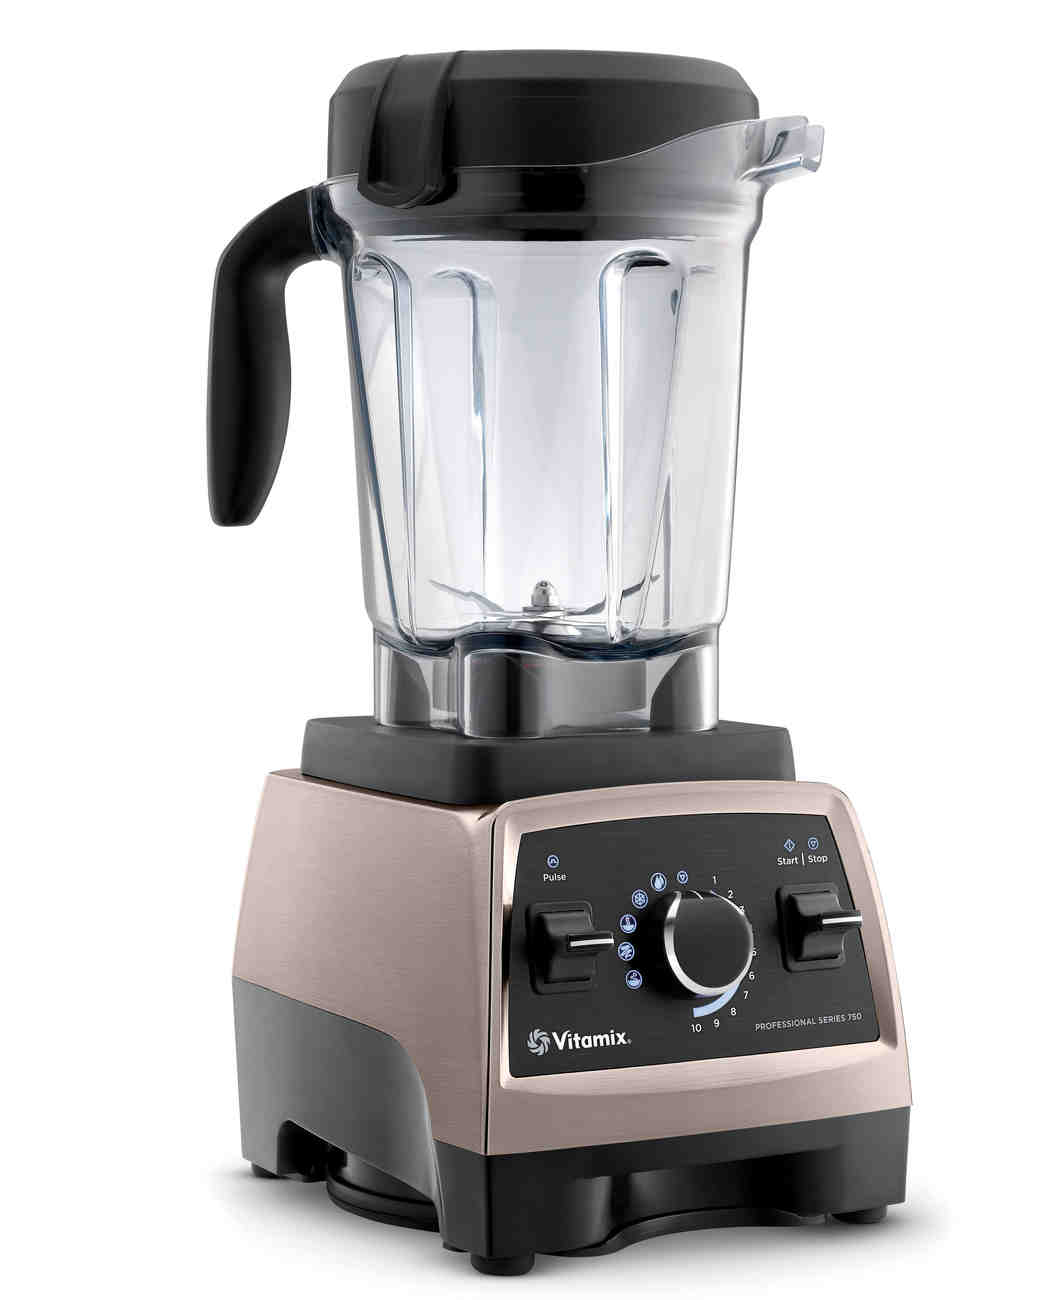 macys-registry-1-vitamix-professional-series-750-blender-0115.jpg